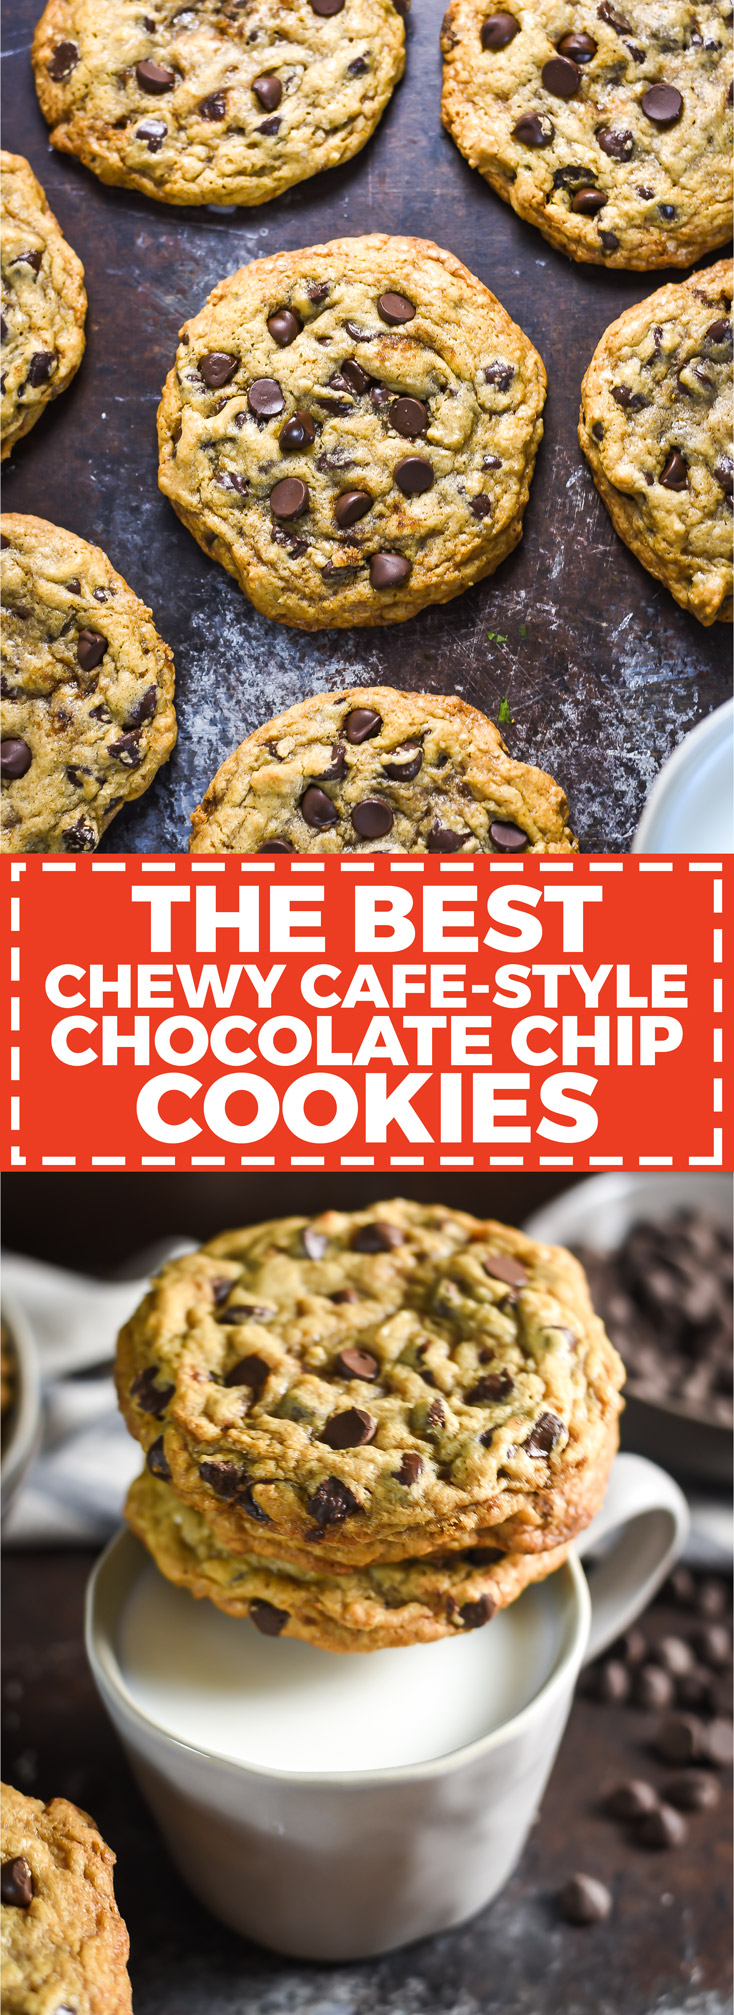 5cbb620a851 The Best Chewy Café-Style Chocolate Chip Cookies. These are my MOST POPULAR  recipe